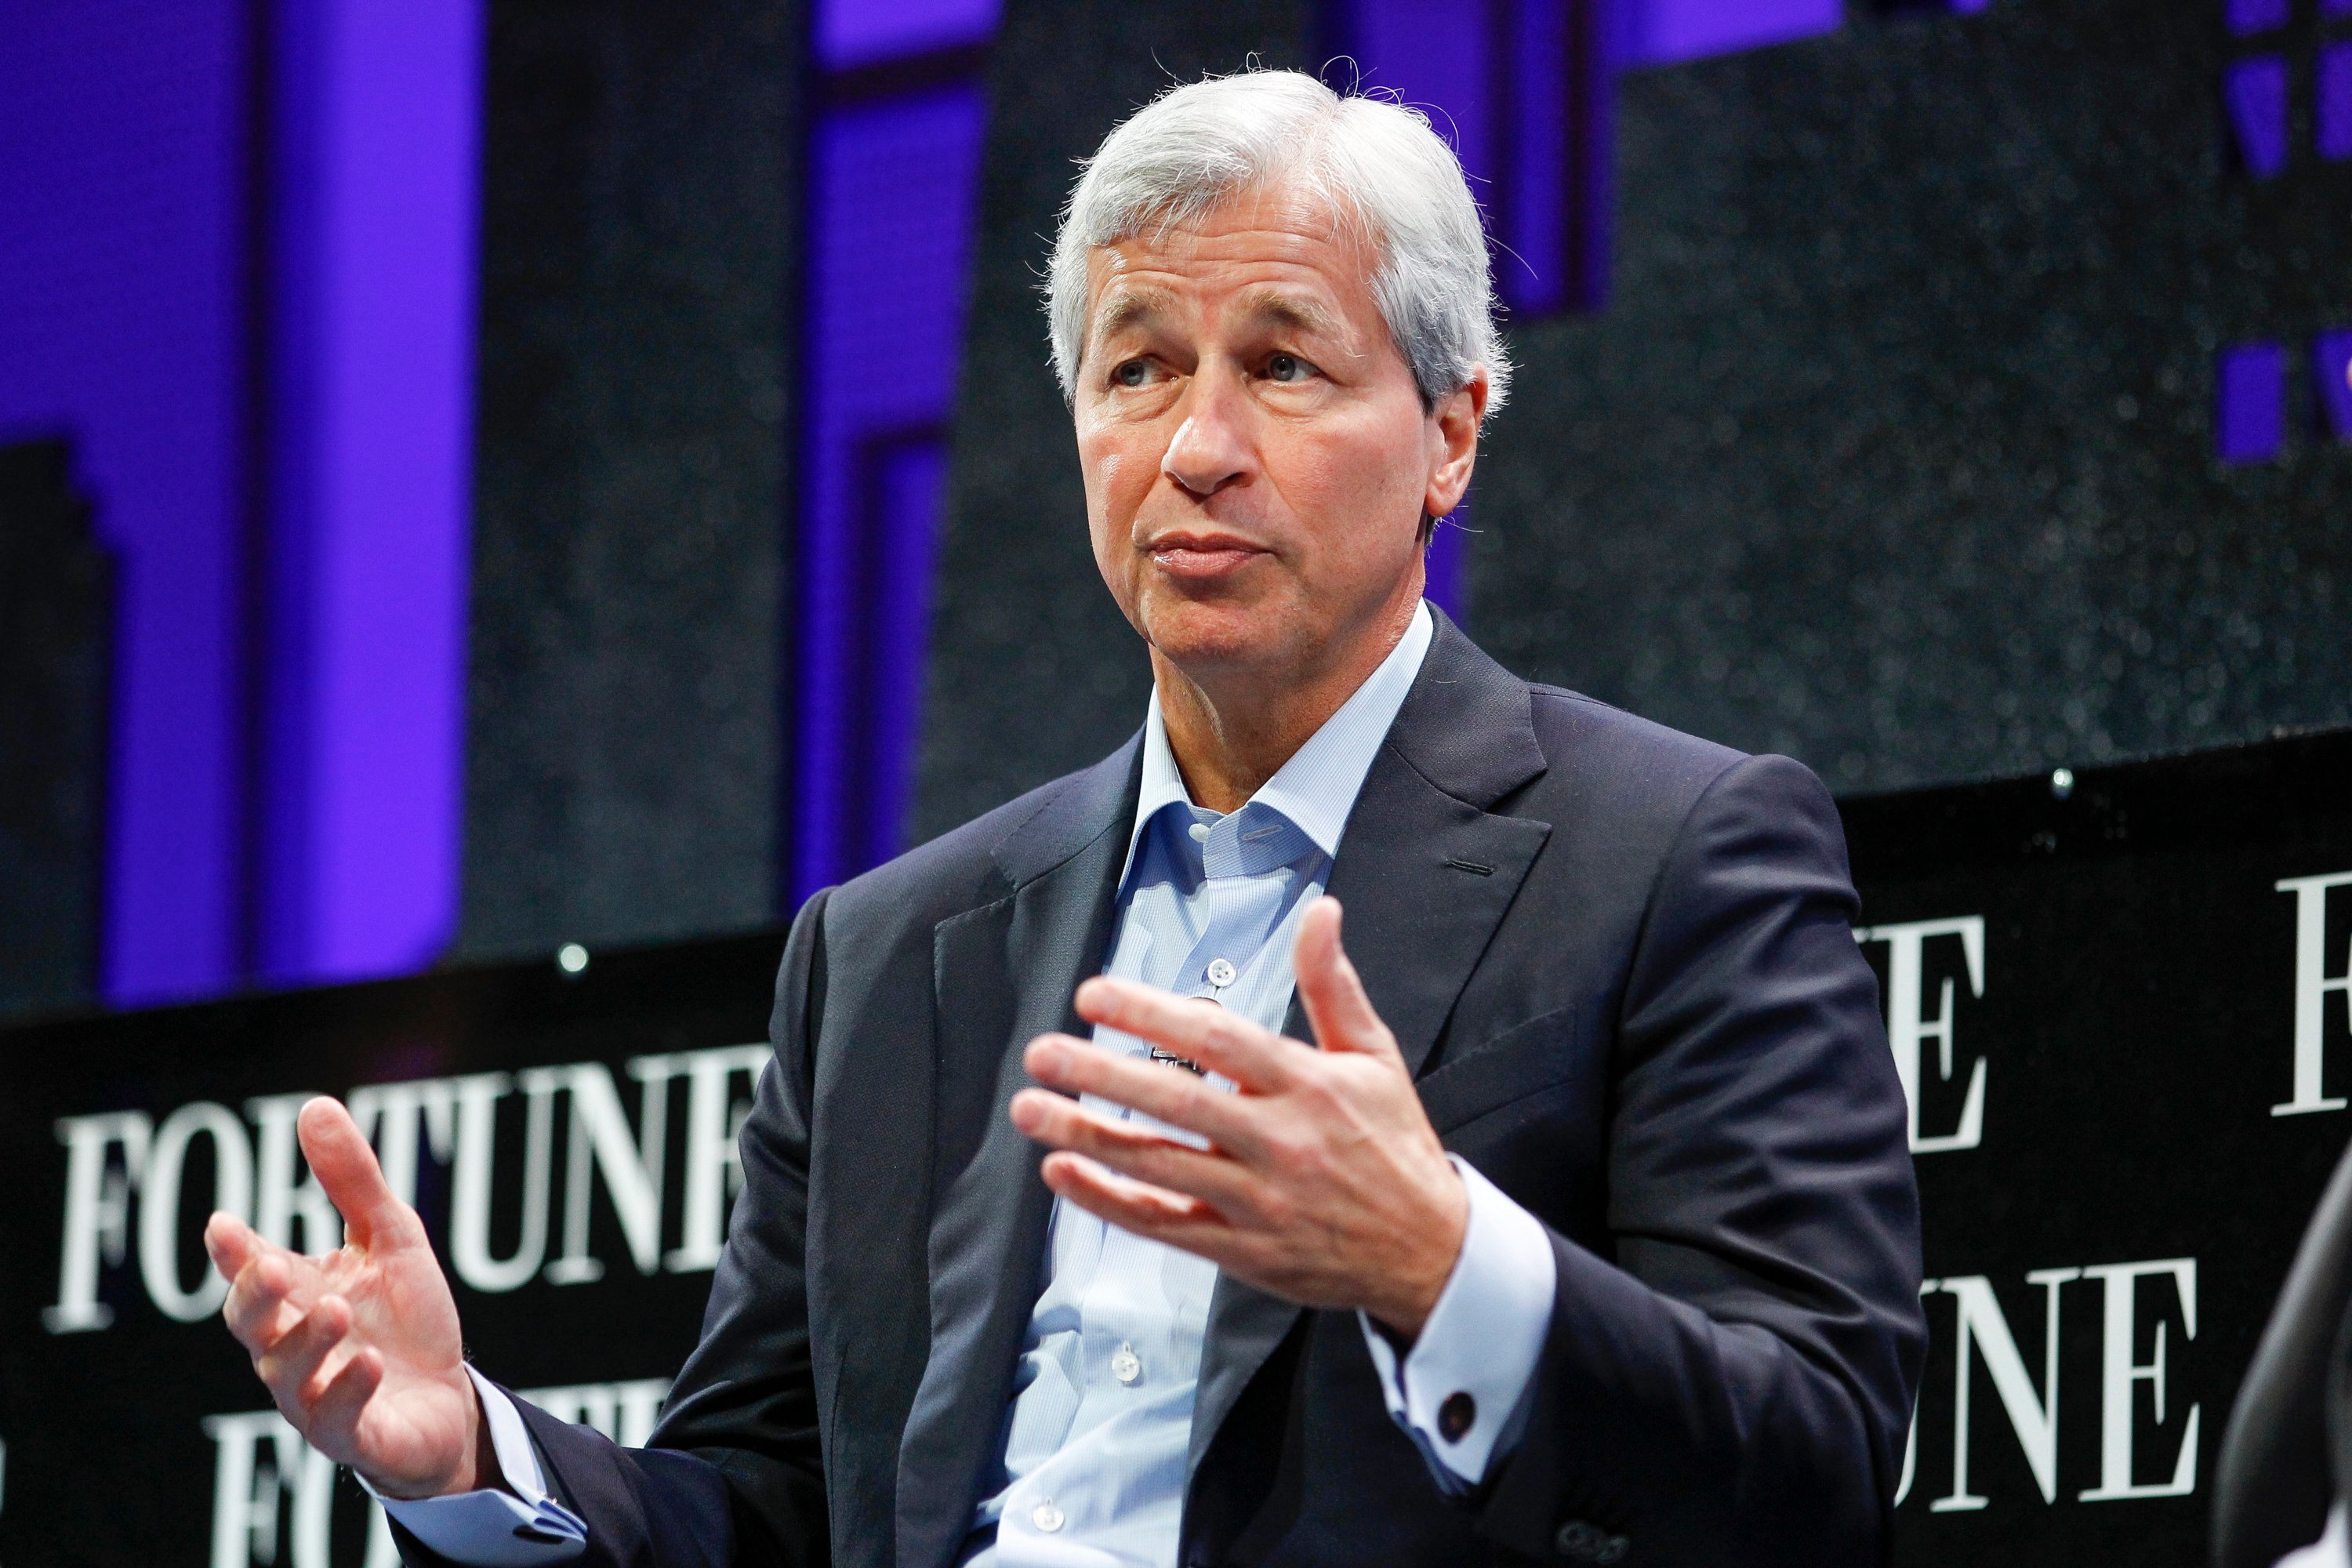 Jamie Dimon is CEO of JPMorgan Chase, one of the banks that stands to benefit the most from the new lobbying push.